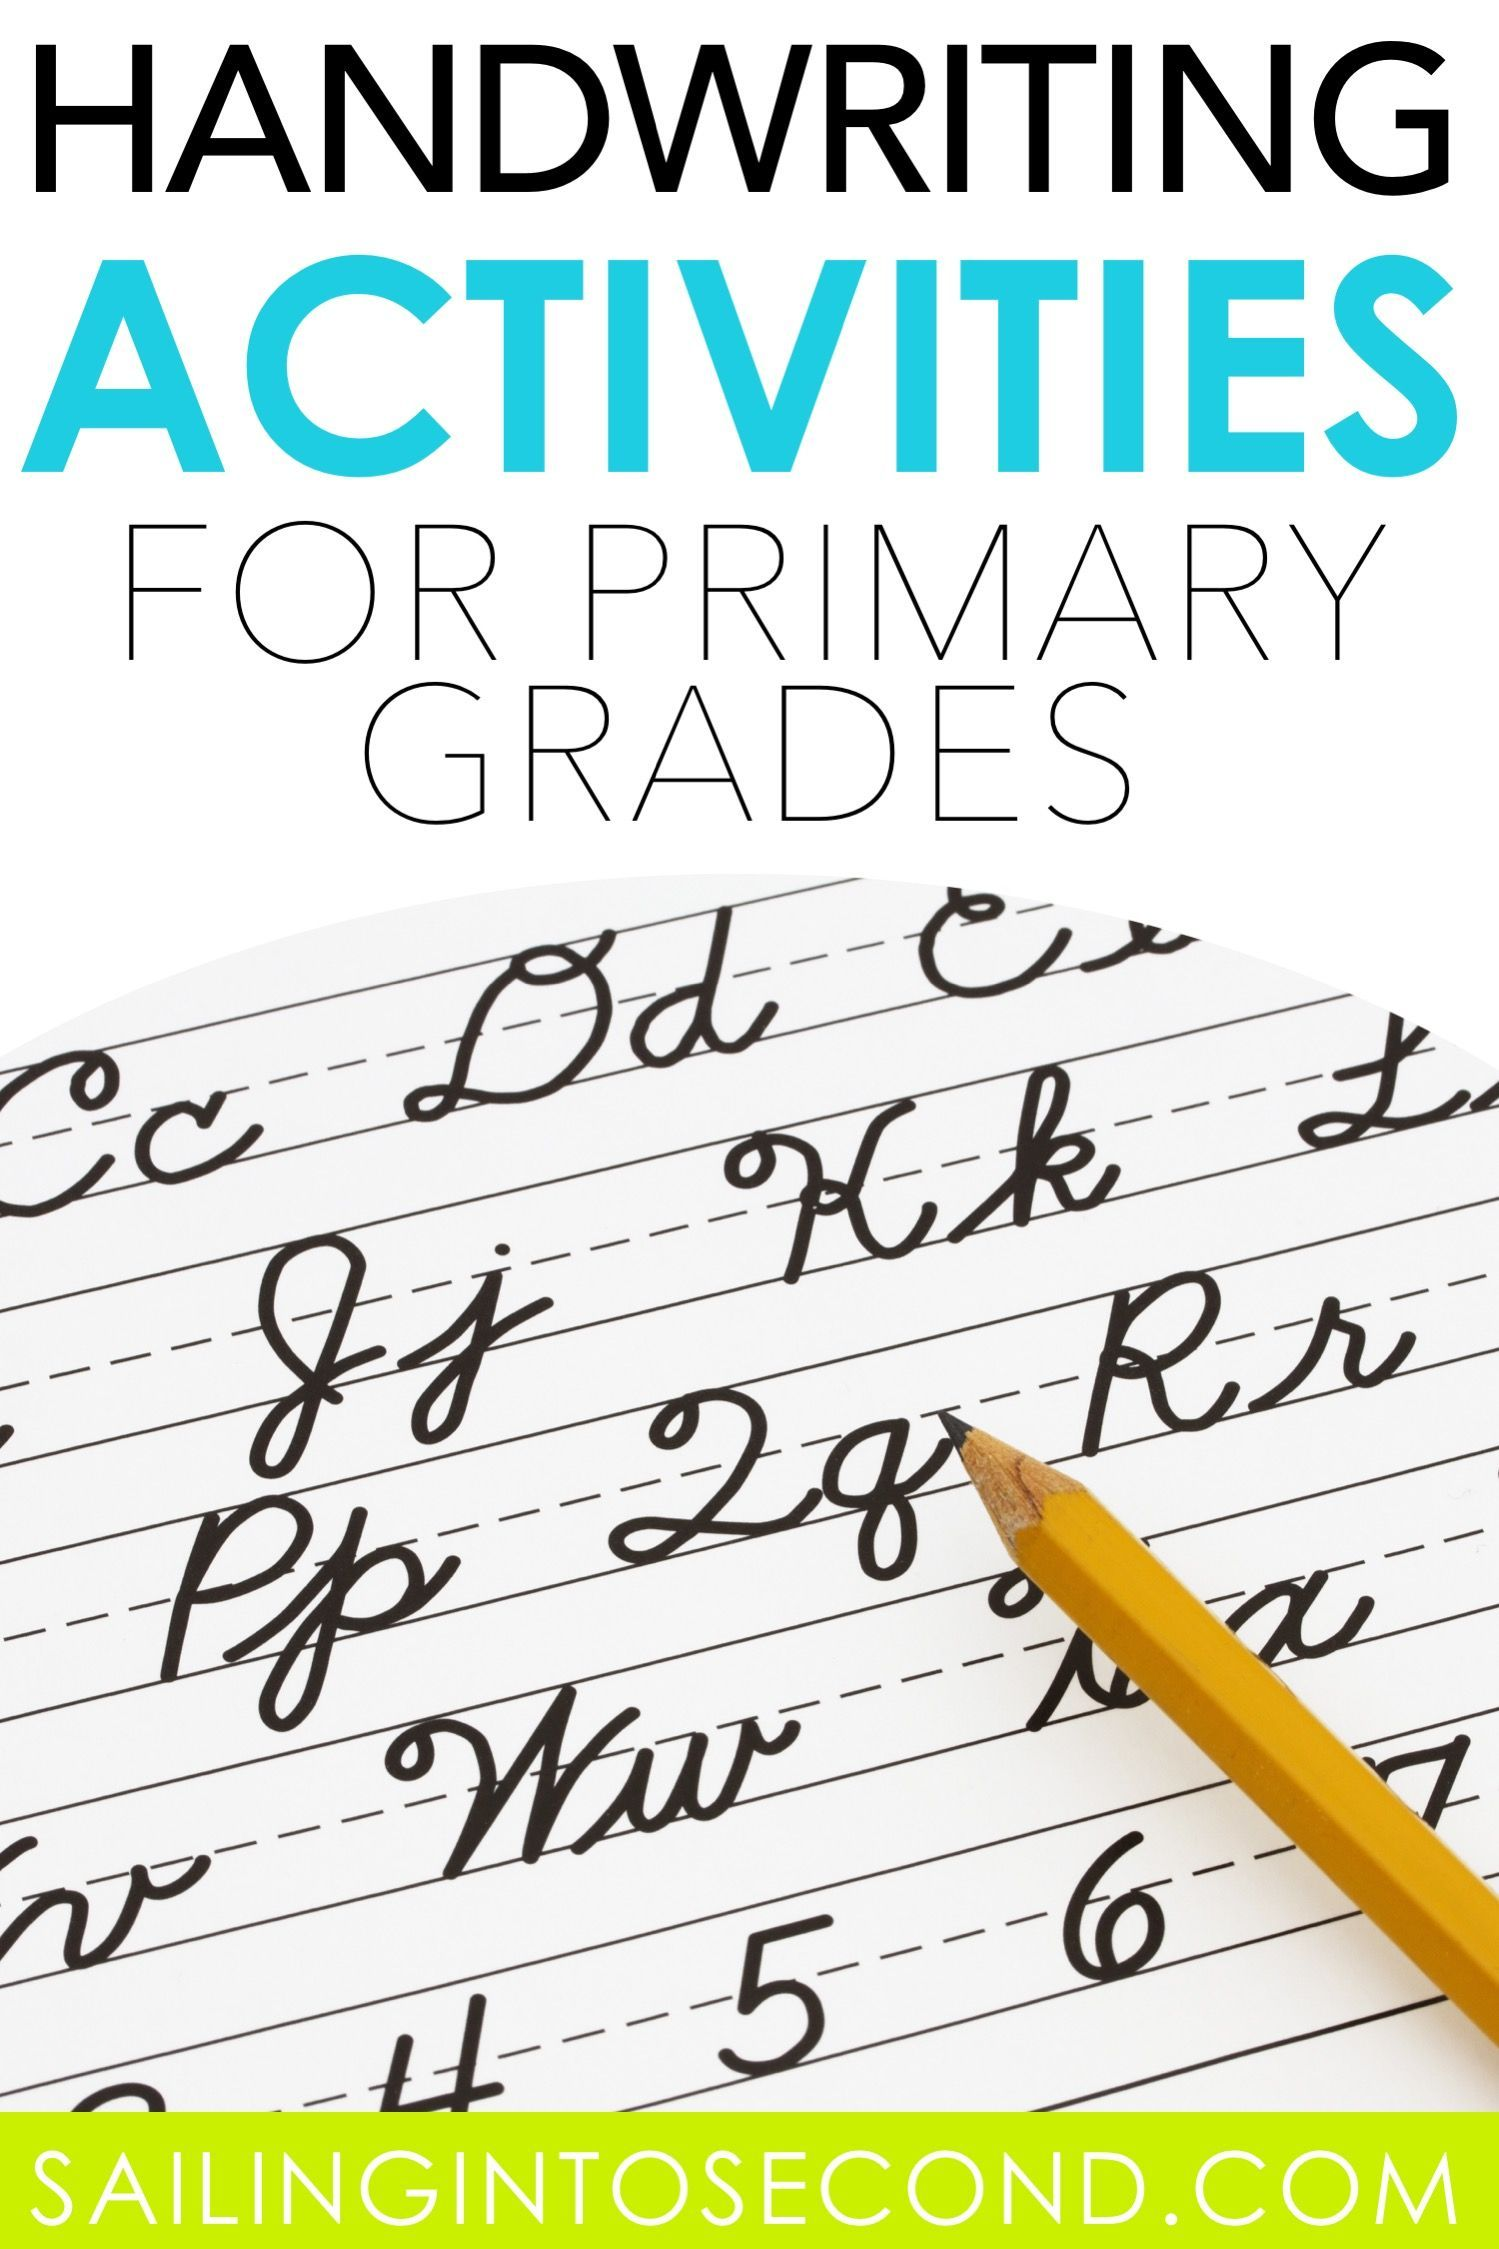 These Fun Handwriting Activities Are Great For Kids In Elementary Grades Click Through To Lea Handwriting Activities Elementary Writing Math Center Activities Fun handwriting activities for grade